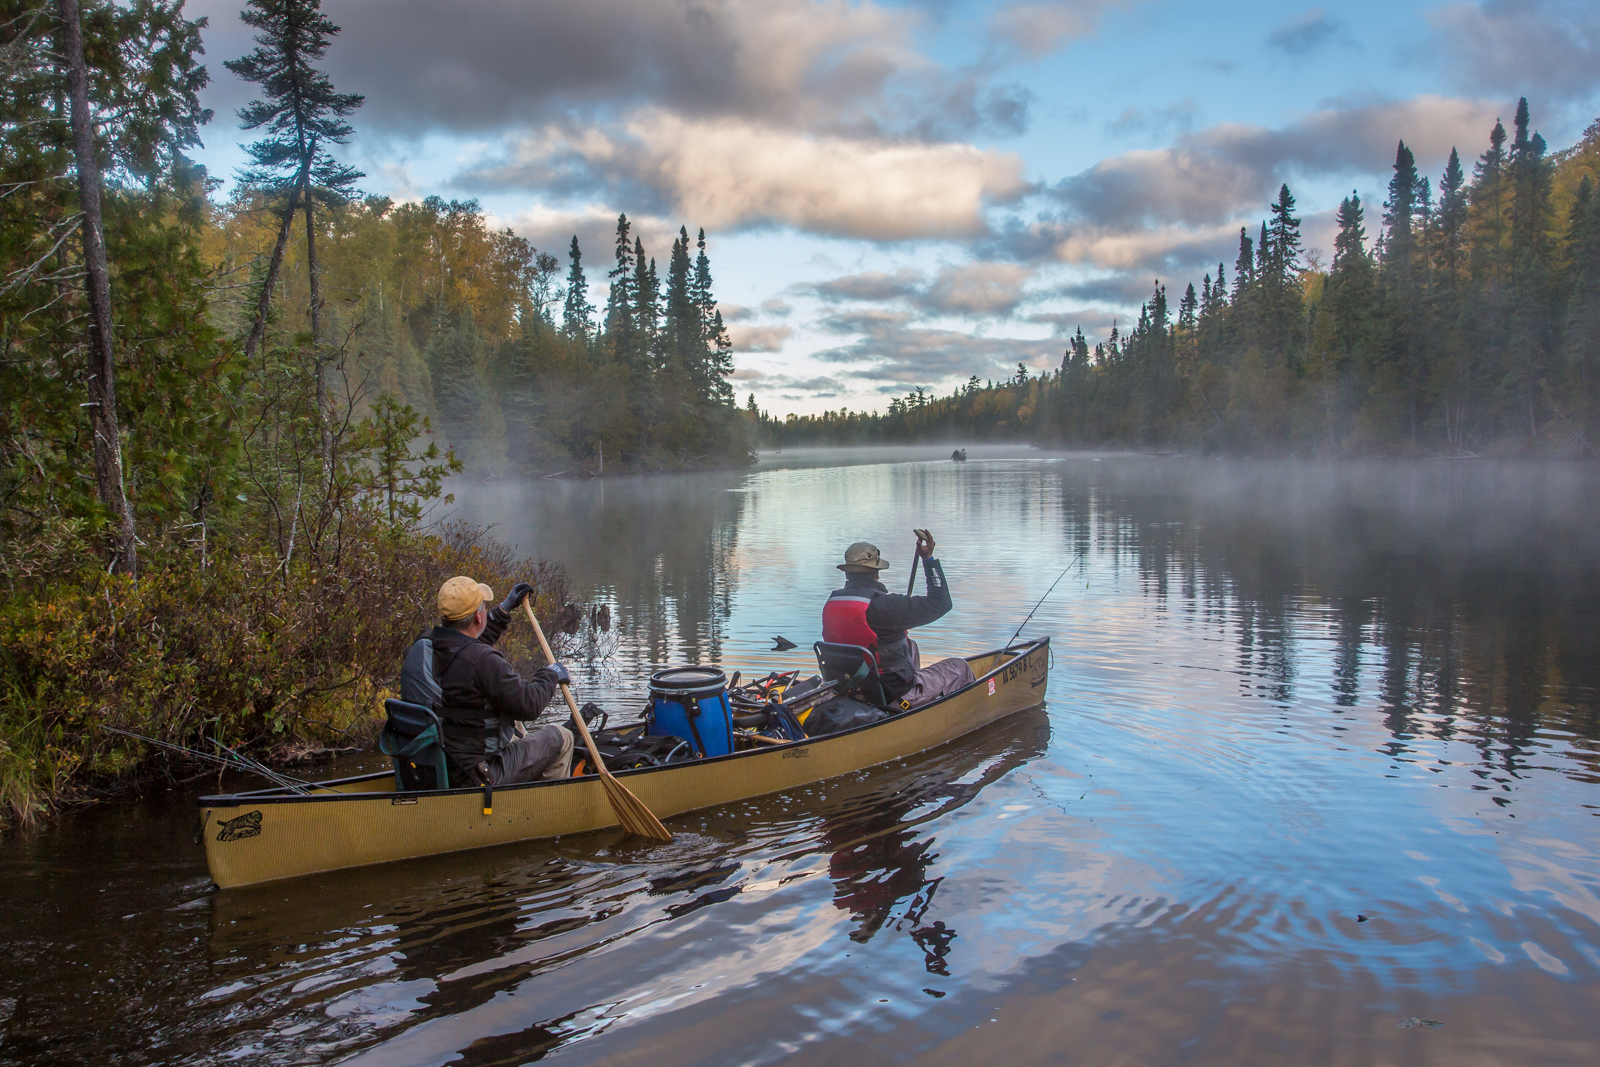 Superior National Forest, Gary Hamer, @GoParks Share the Experience 2016 photo contest